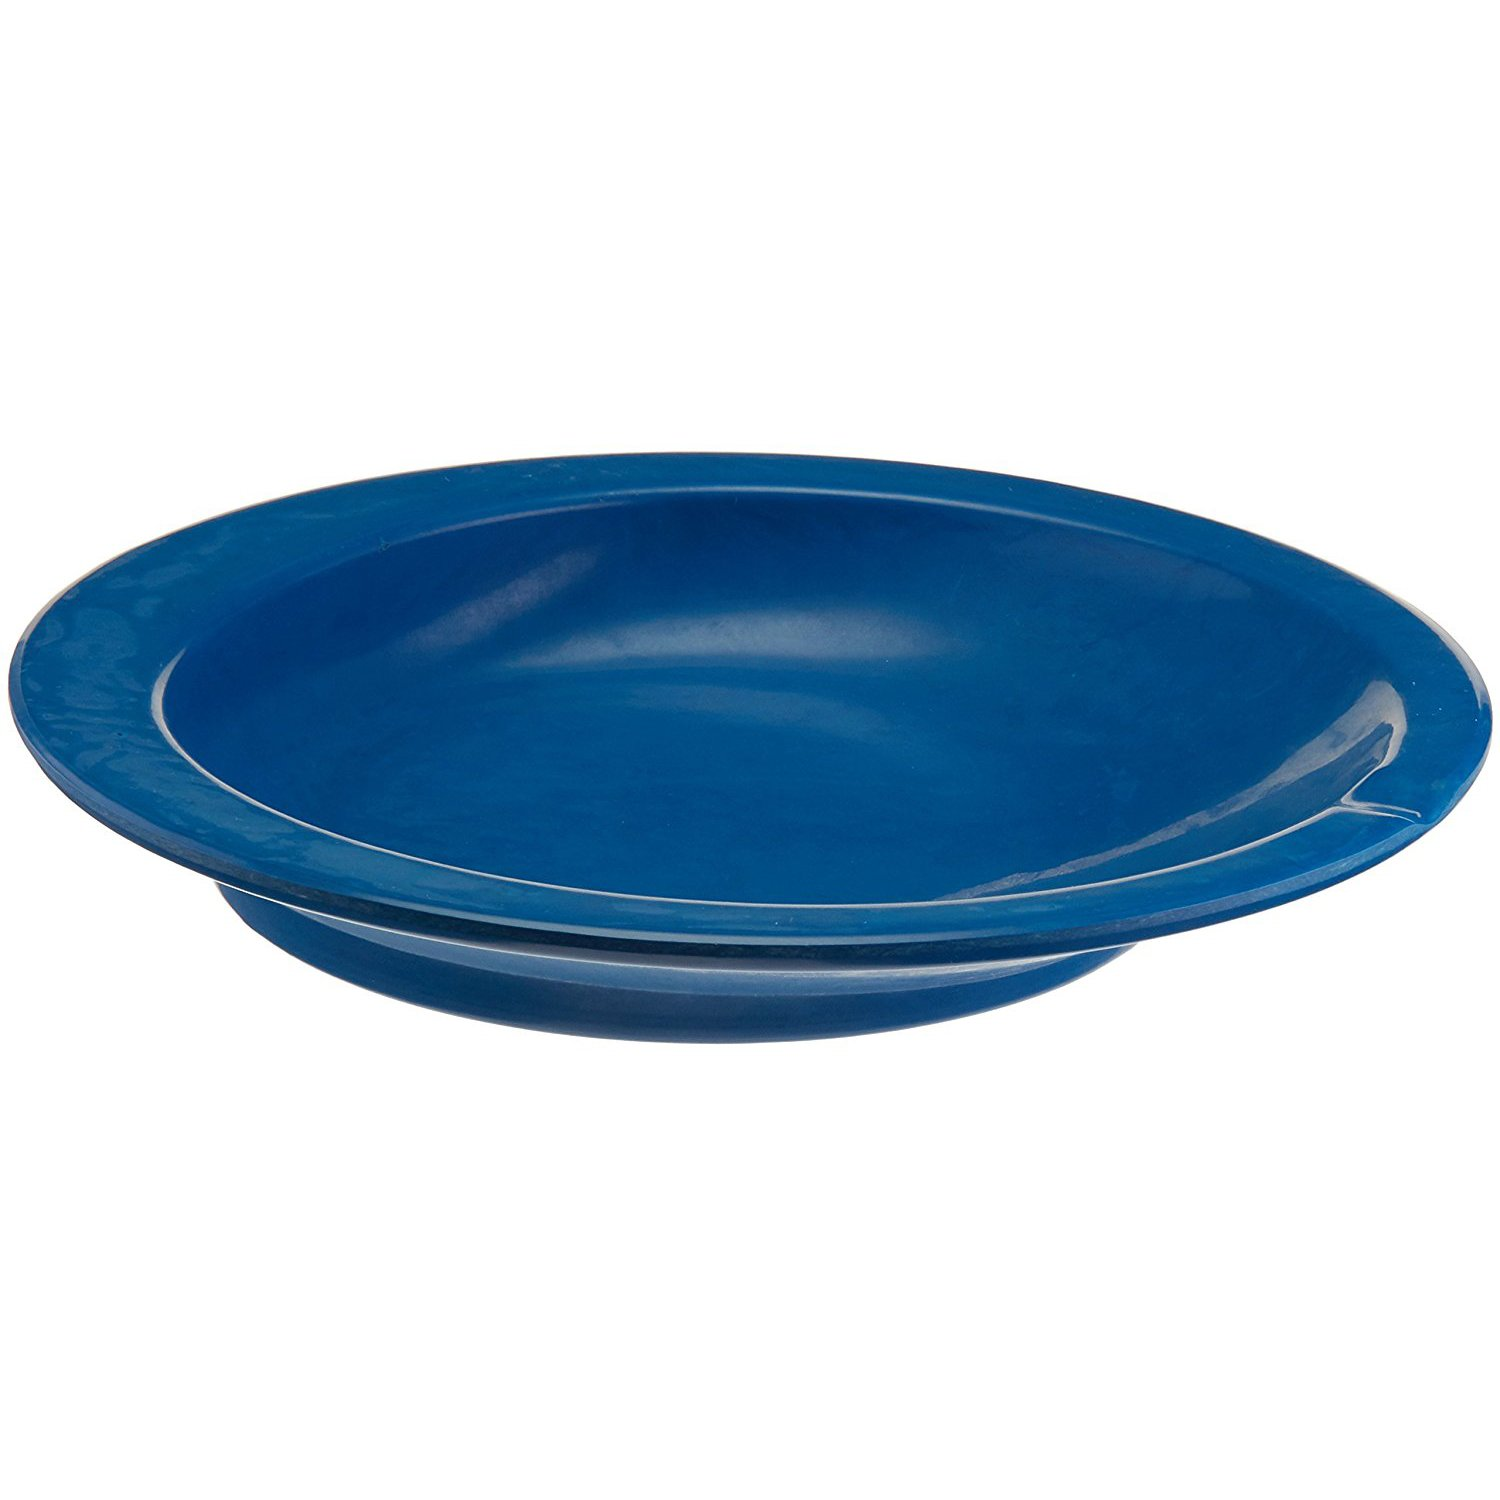 Sammons Preston Round Scoop Dish, Blue, Polyester Dish with Non-Skid Base has 9'' Diameter & Center Depth of 1.5'', Grooved Lip Orients the Visually Impaired & Acts as Utensil Rest, Adaptive Eating Aid by Sammons Preston